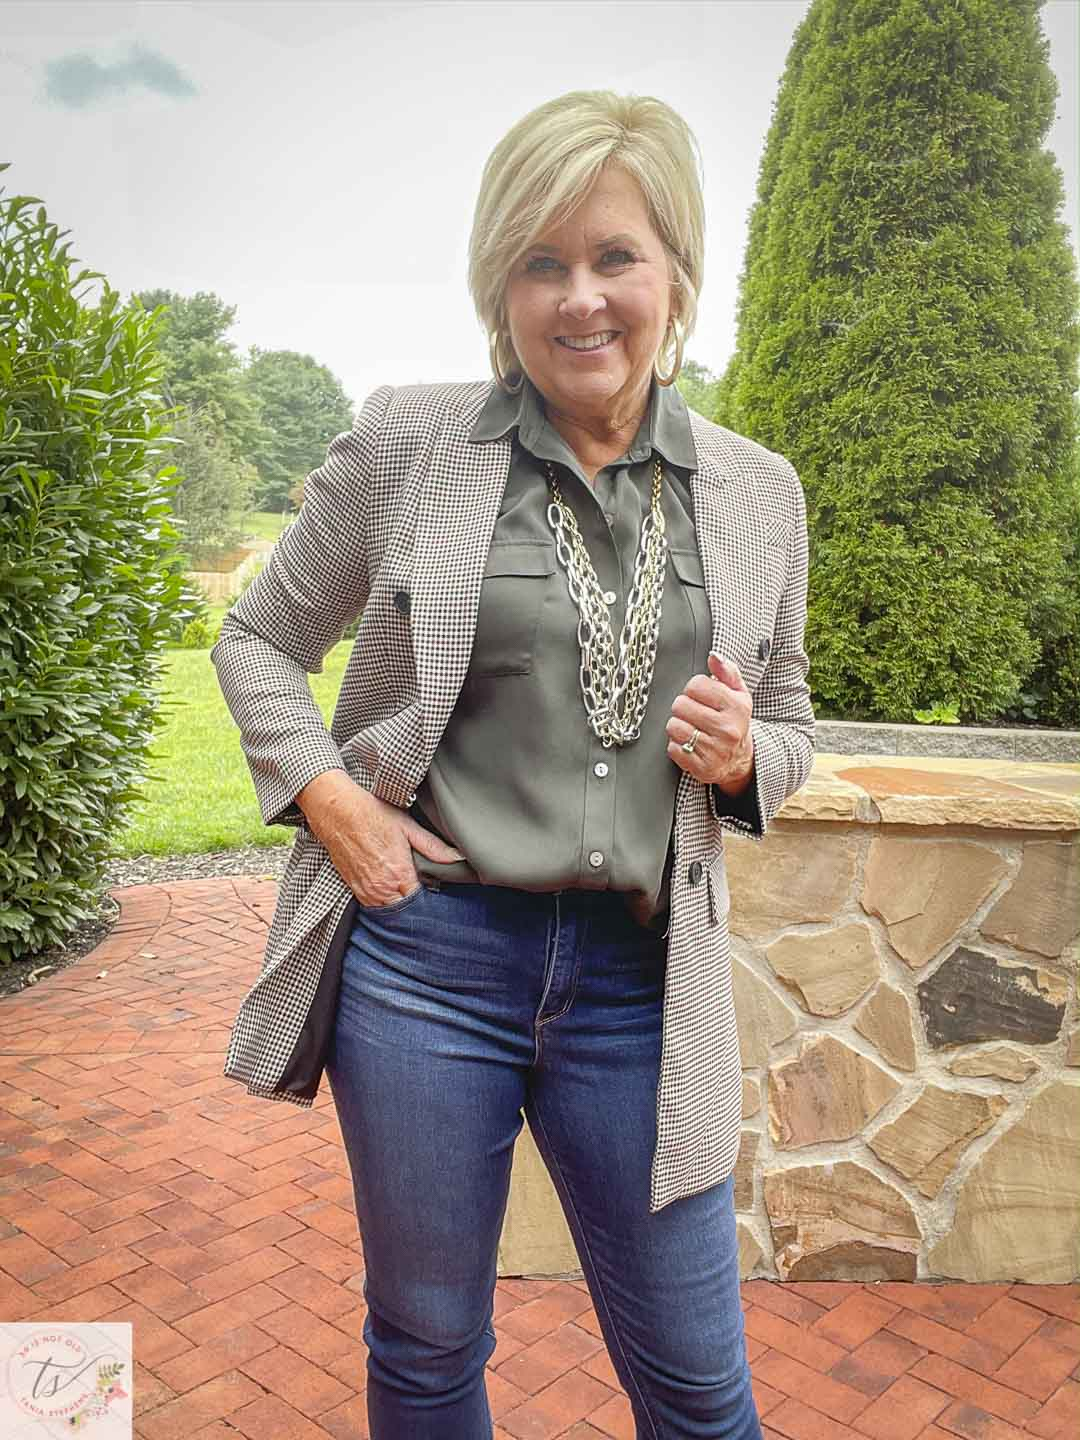 Over 40 Fashion Blogger, Tania Stephens, is wearing a plaid double breasted blazer with an olive button-up shirt